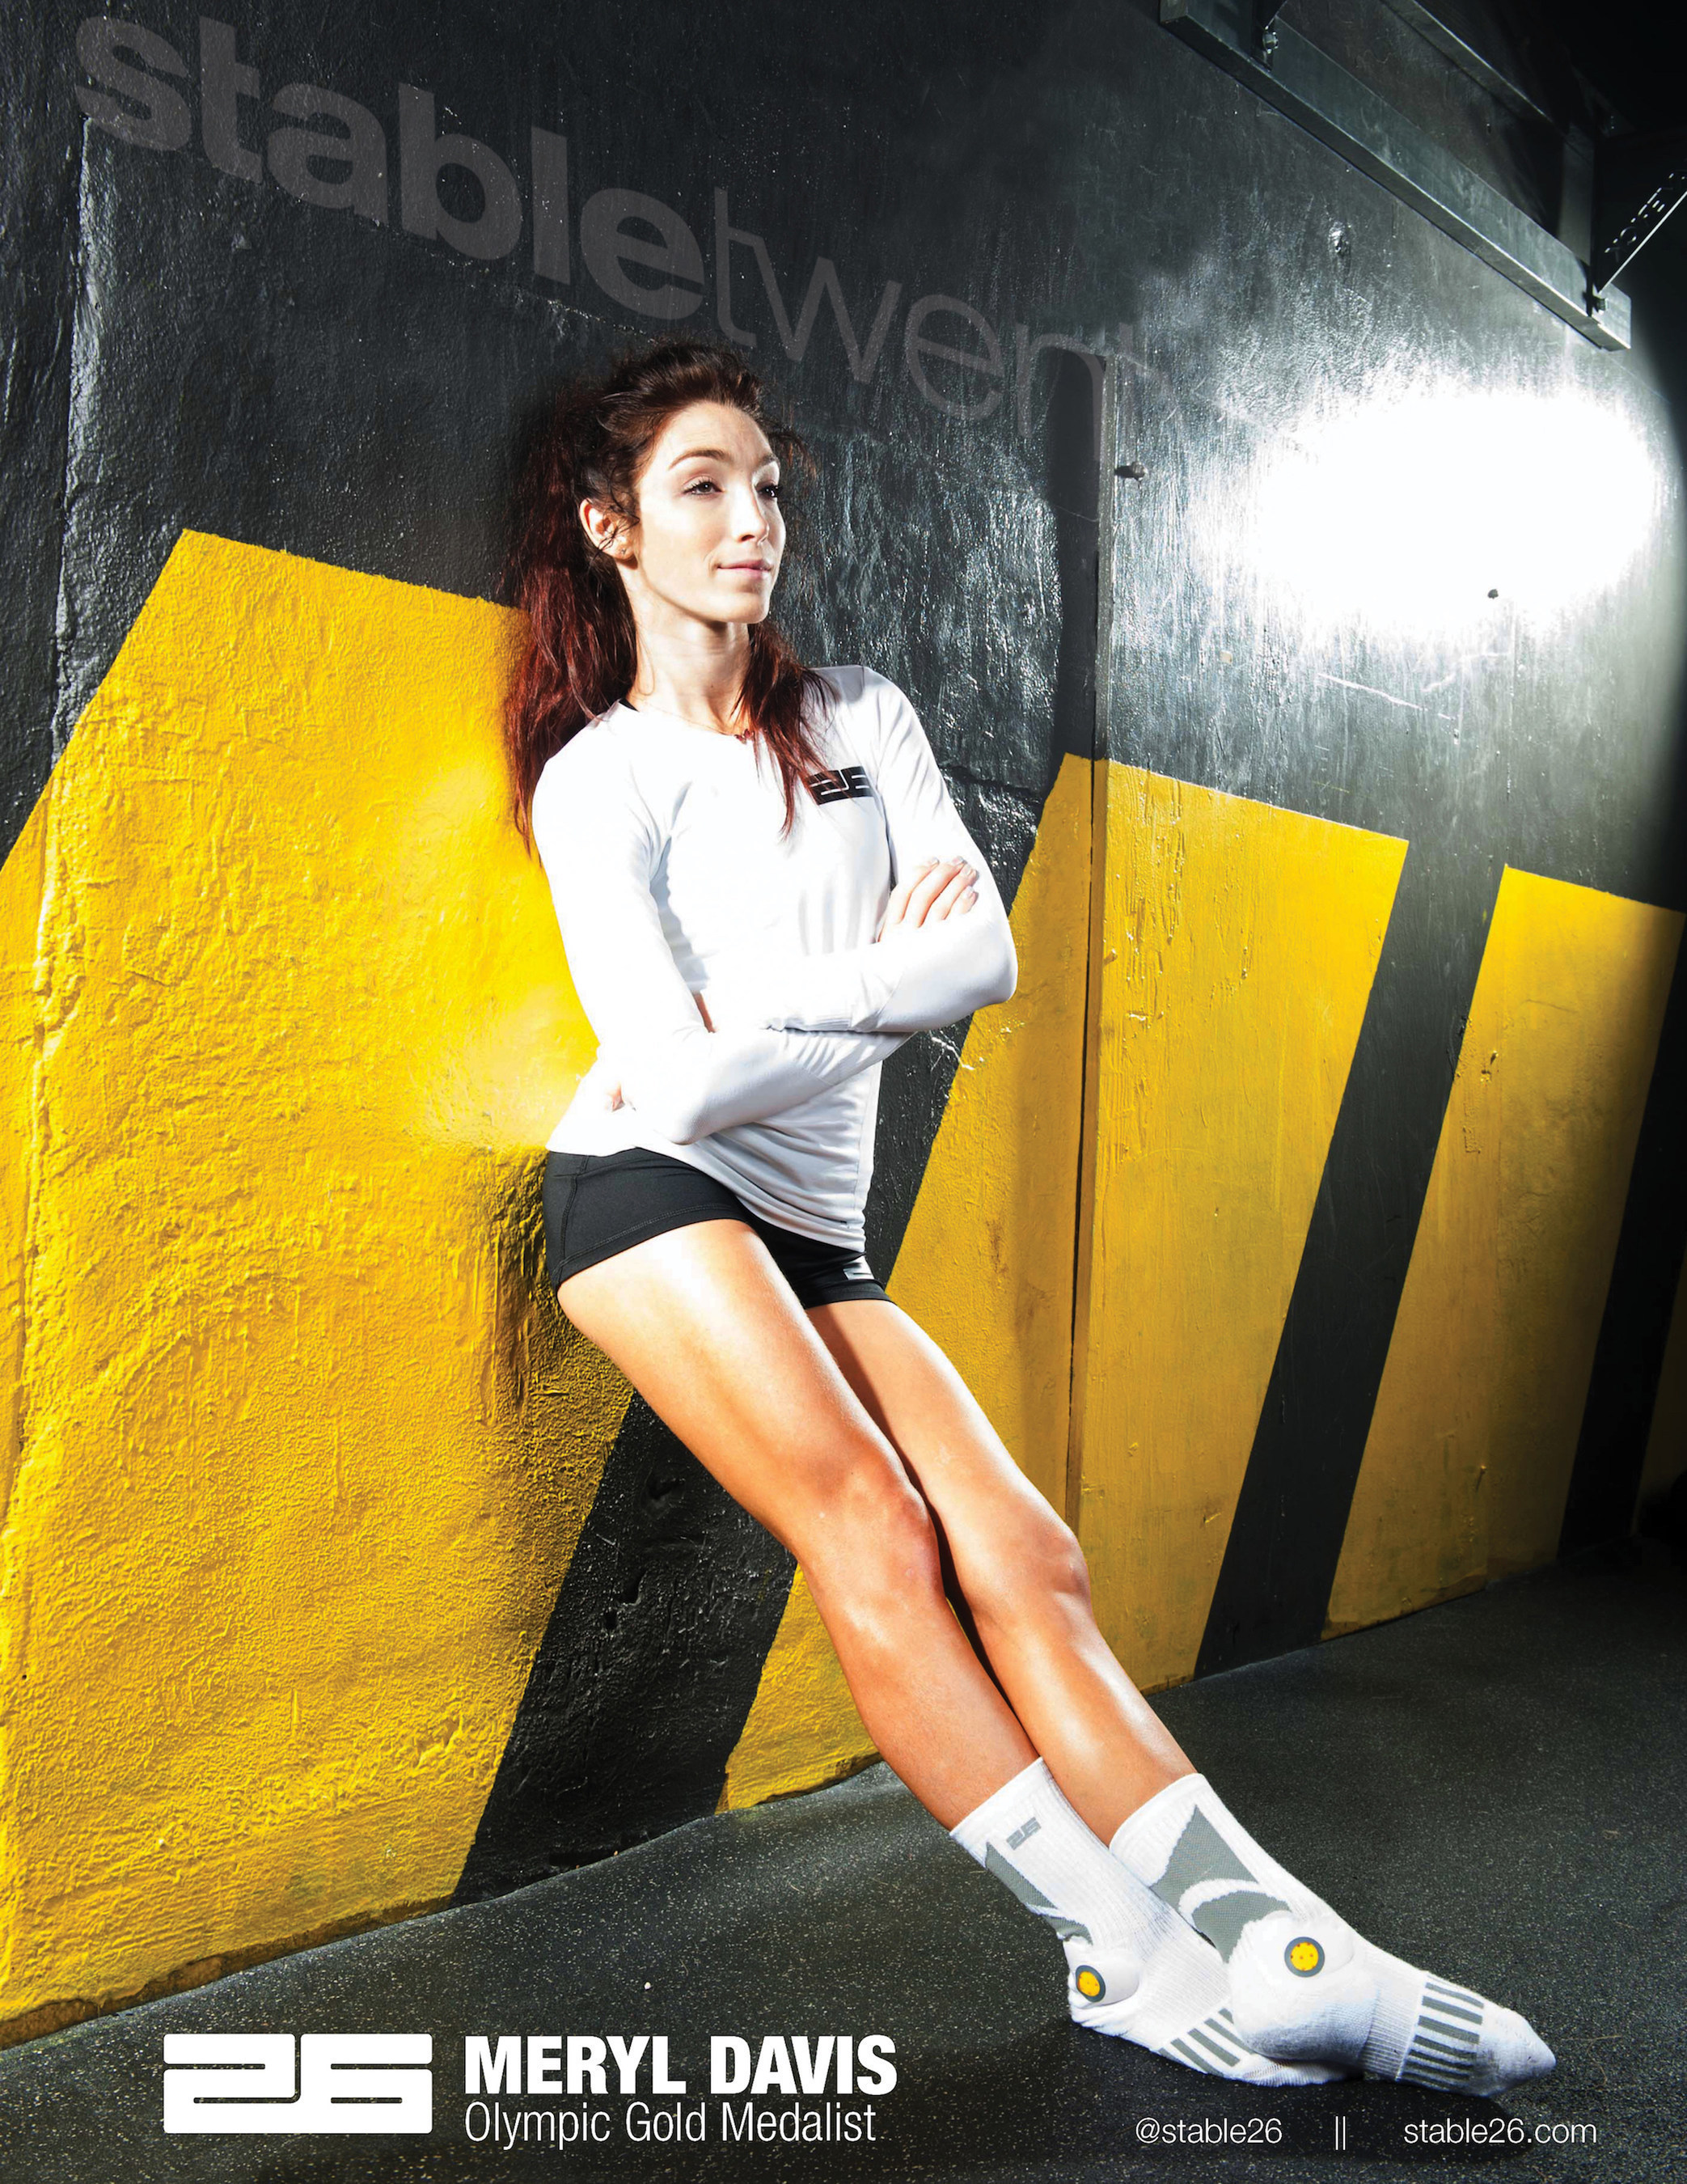 Stable 26 Announces Addition of Meryl Davis to the Ambassador Roster